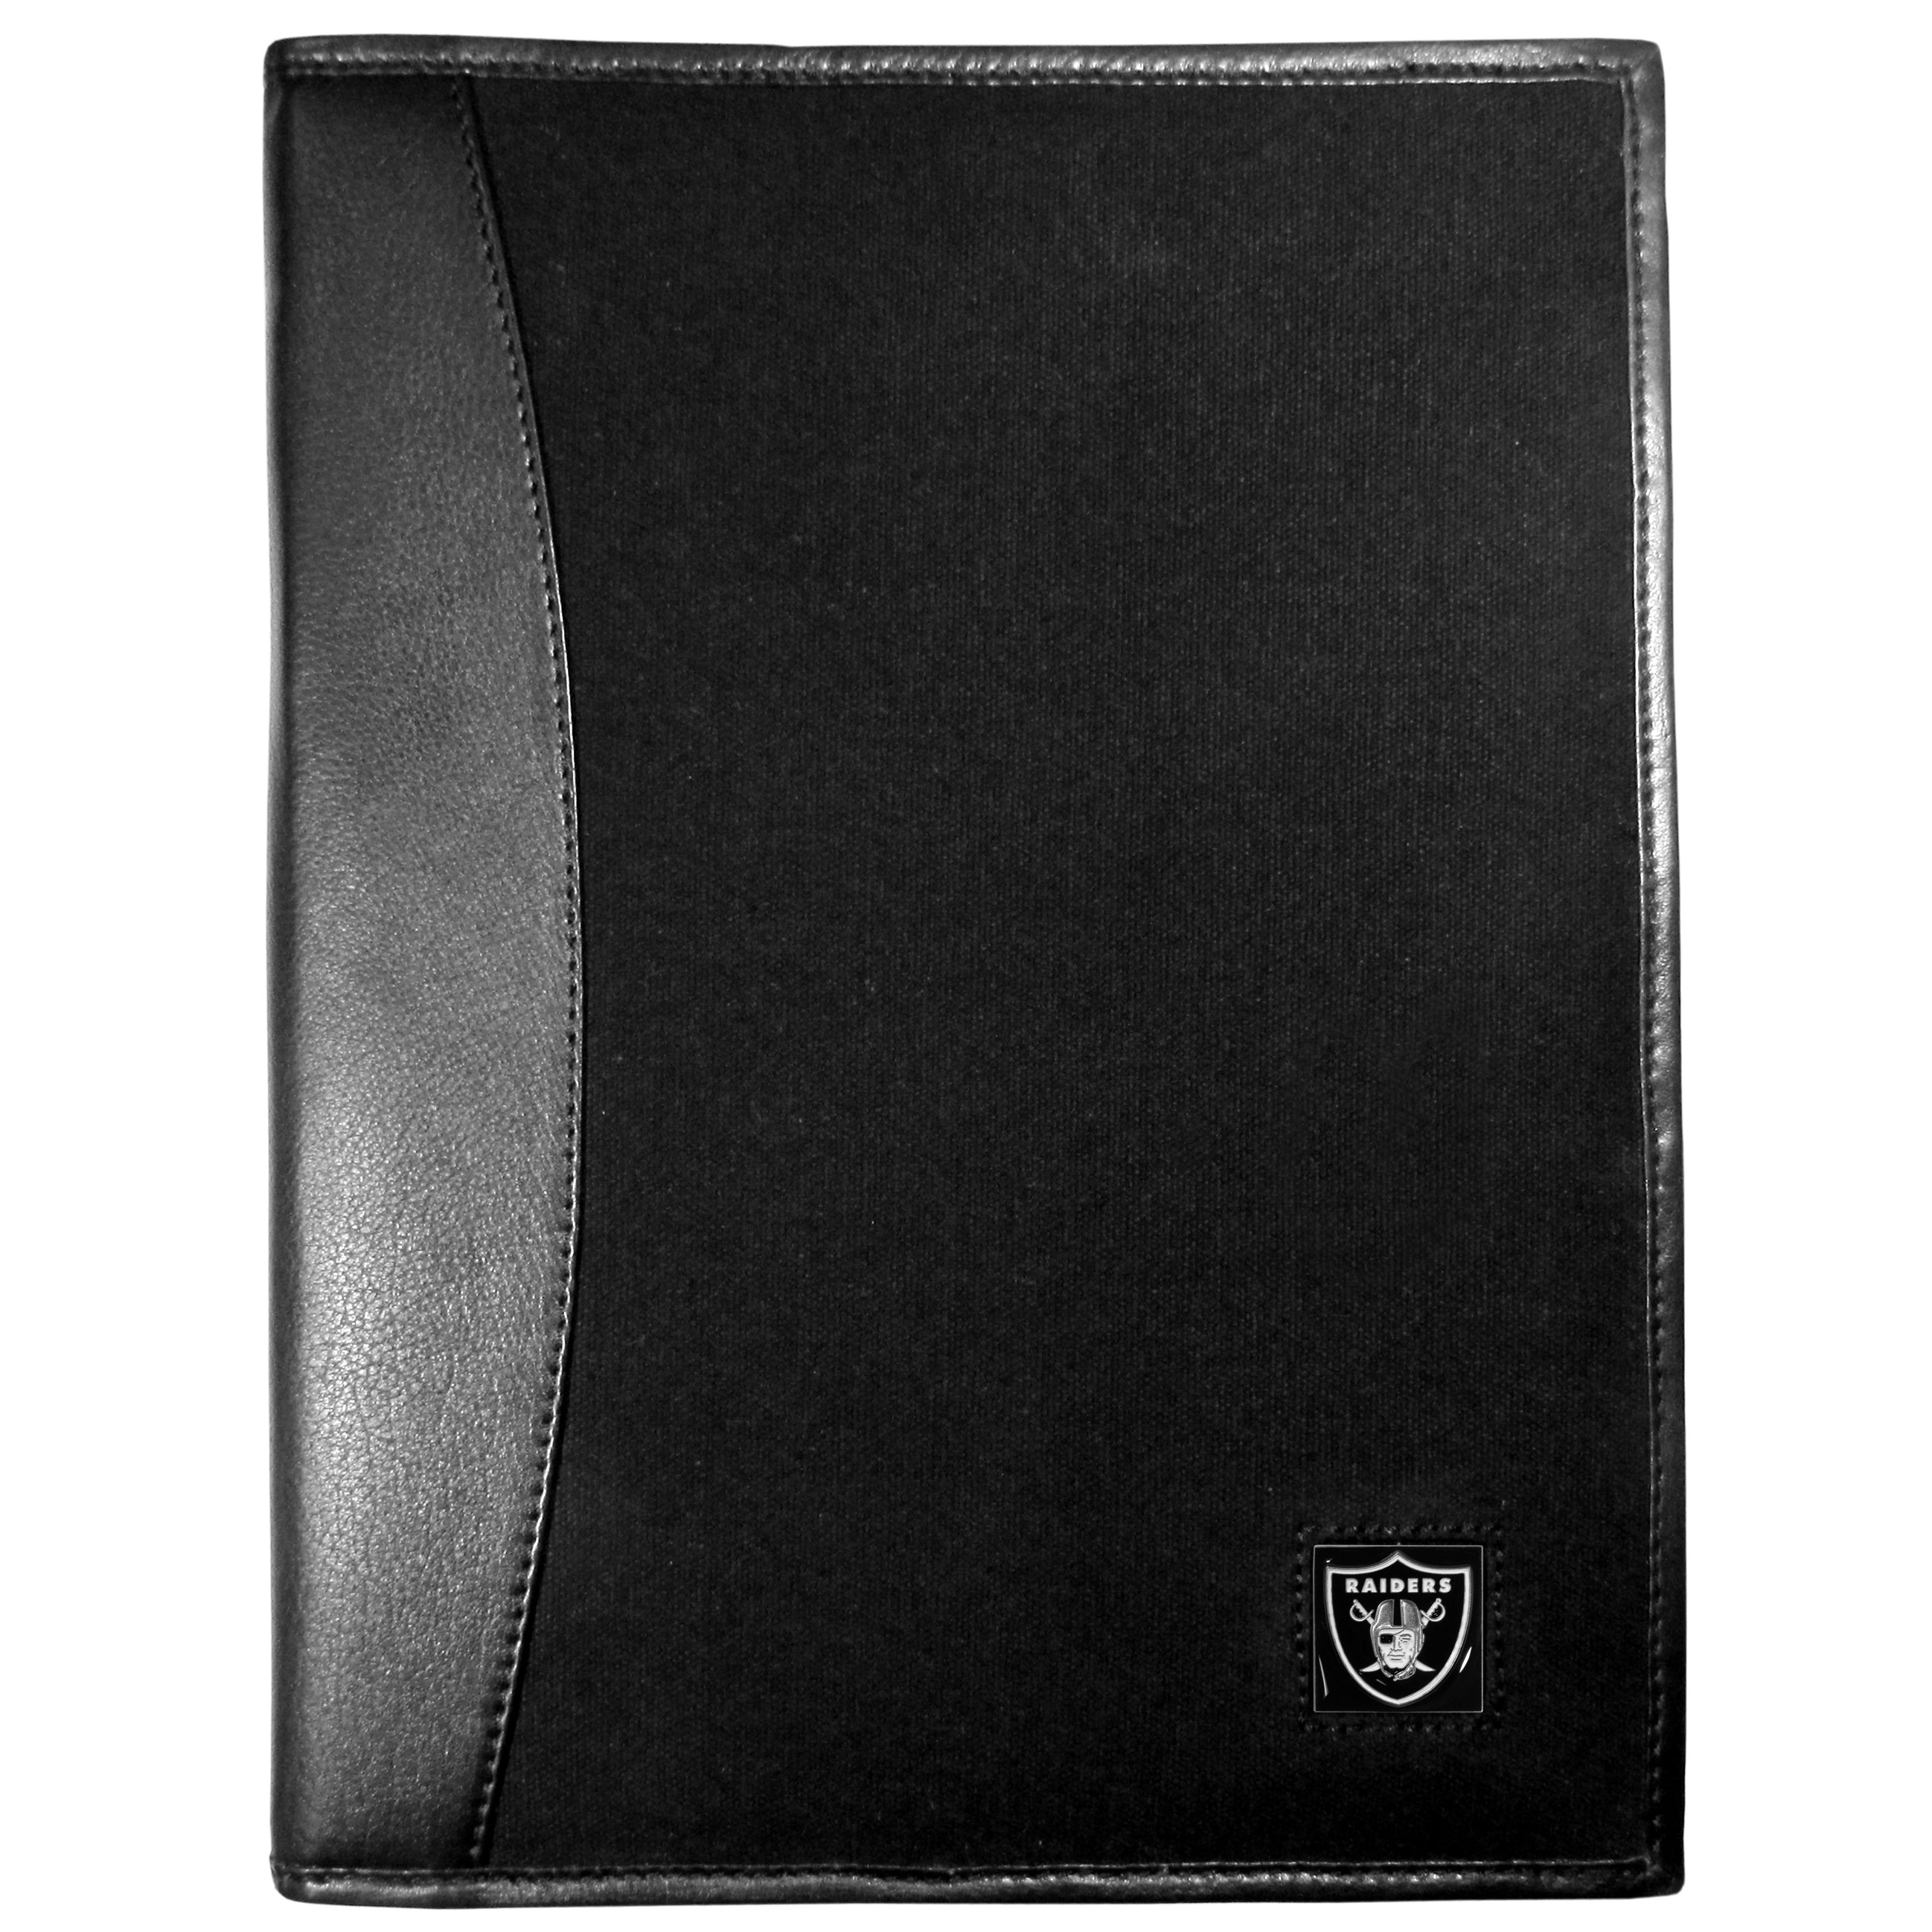 Oakland Raiders Leather and Canvas Padfolio - Our leather and canvas padfolio perfectly blends form and function. The attractive portfolio is bound in fine grain leather with an attractive canvas finish and the interior is a soft nylon. This high quality business accessory also features a fully cast metal Oakland Raiders emblem that is subtly set in the corner of the organizer. It is packed with features like 6 card slots for badges, business cards, hotel keys or credit cards and ID with a large pocket for loose papers and a writing tablet slot making it a must-have for the professional on the go.